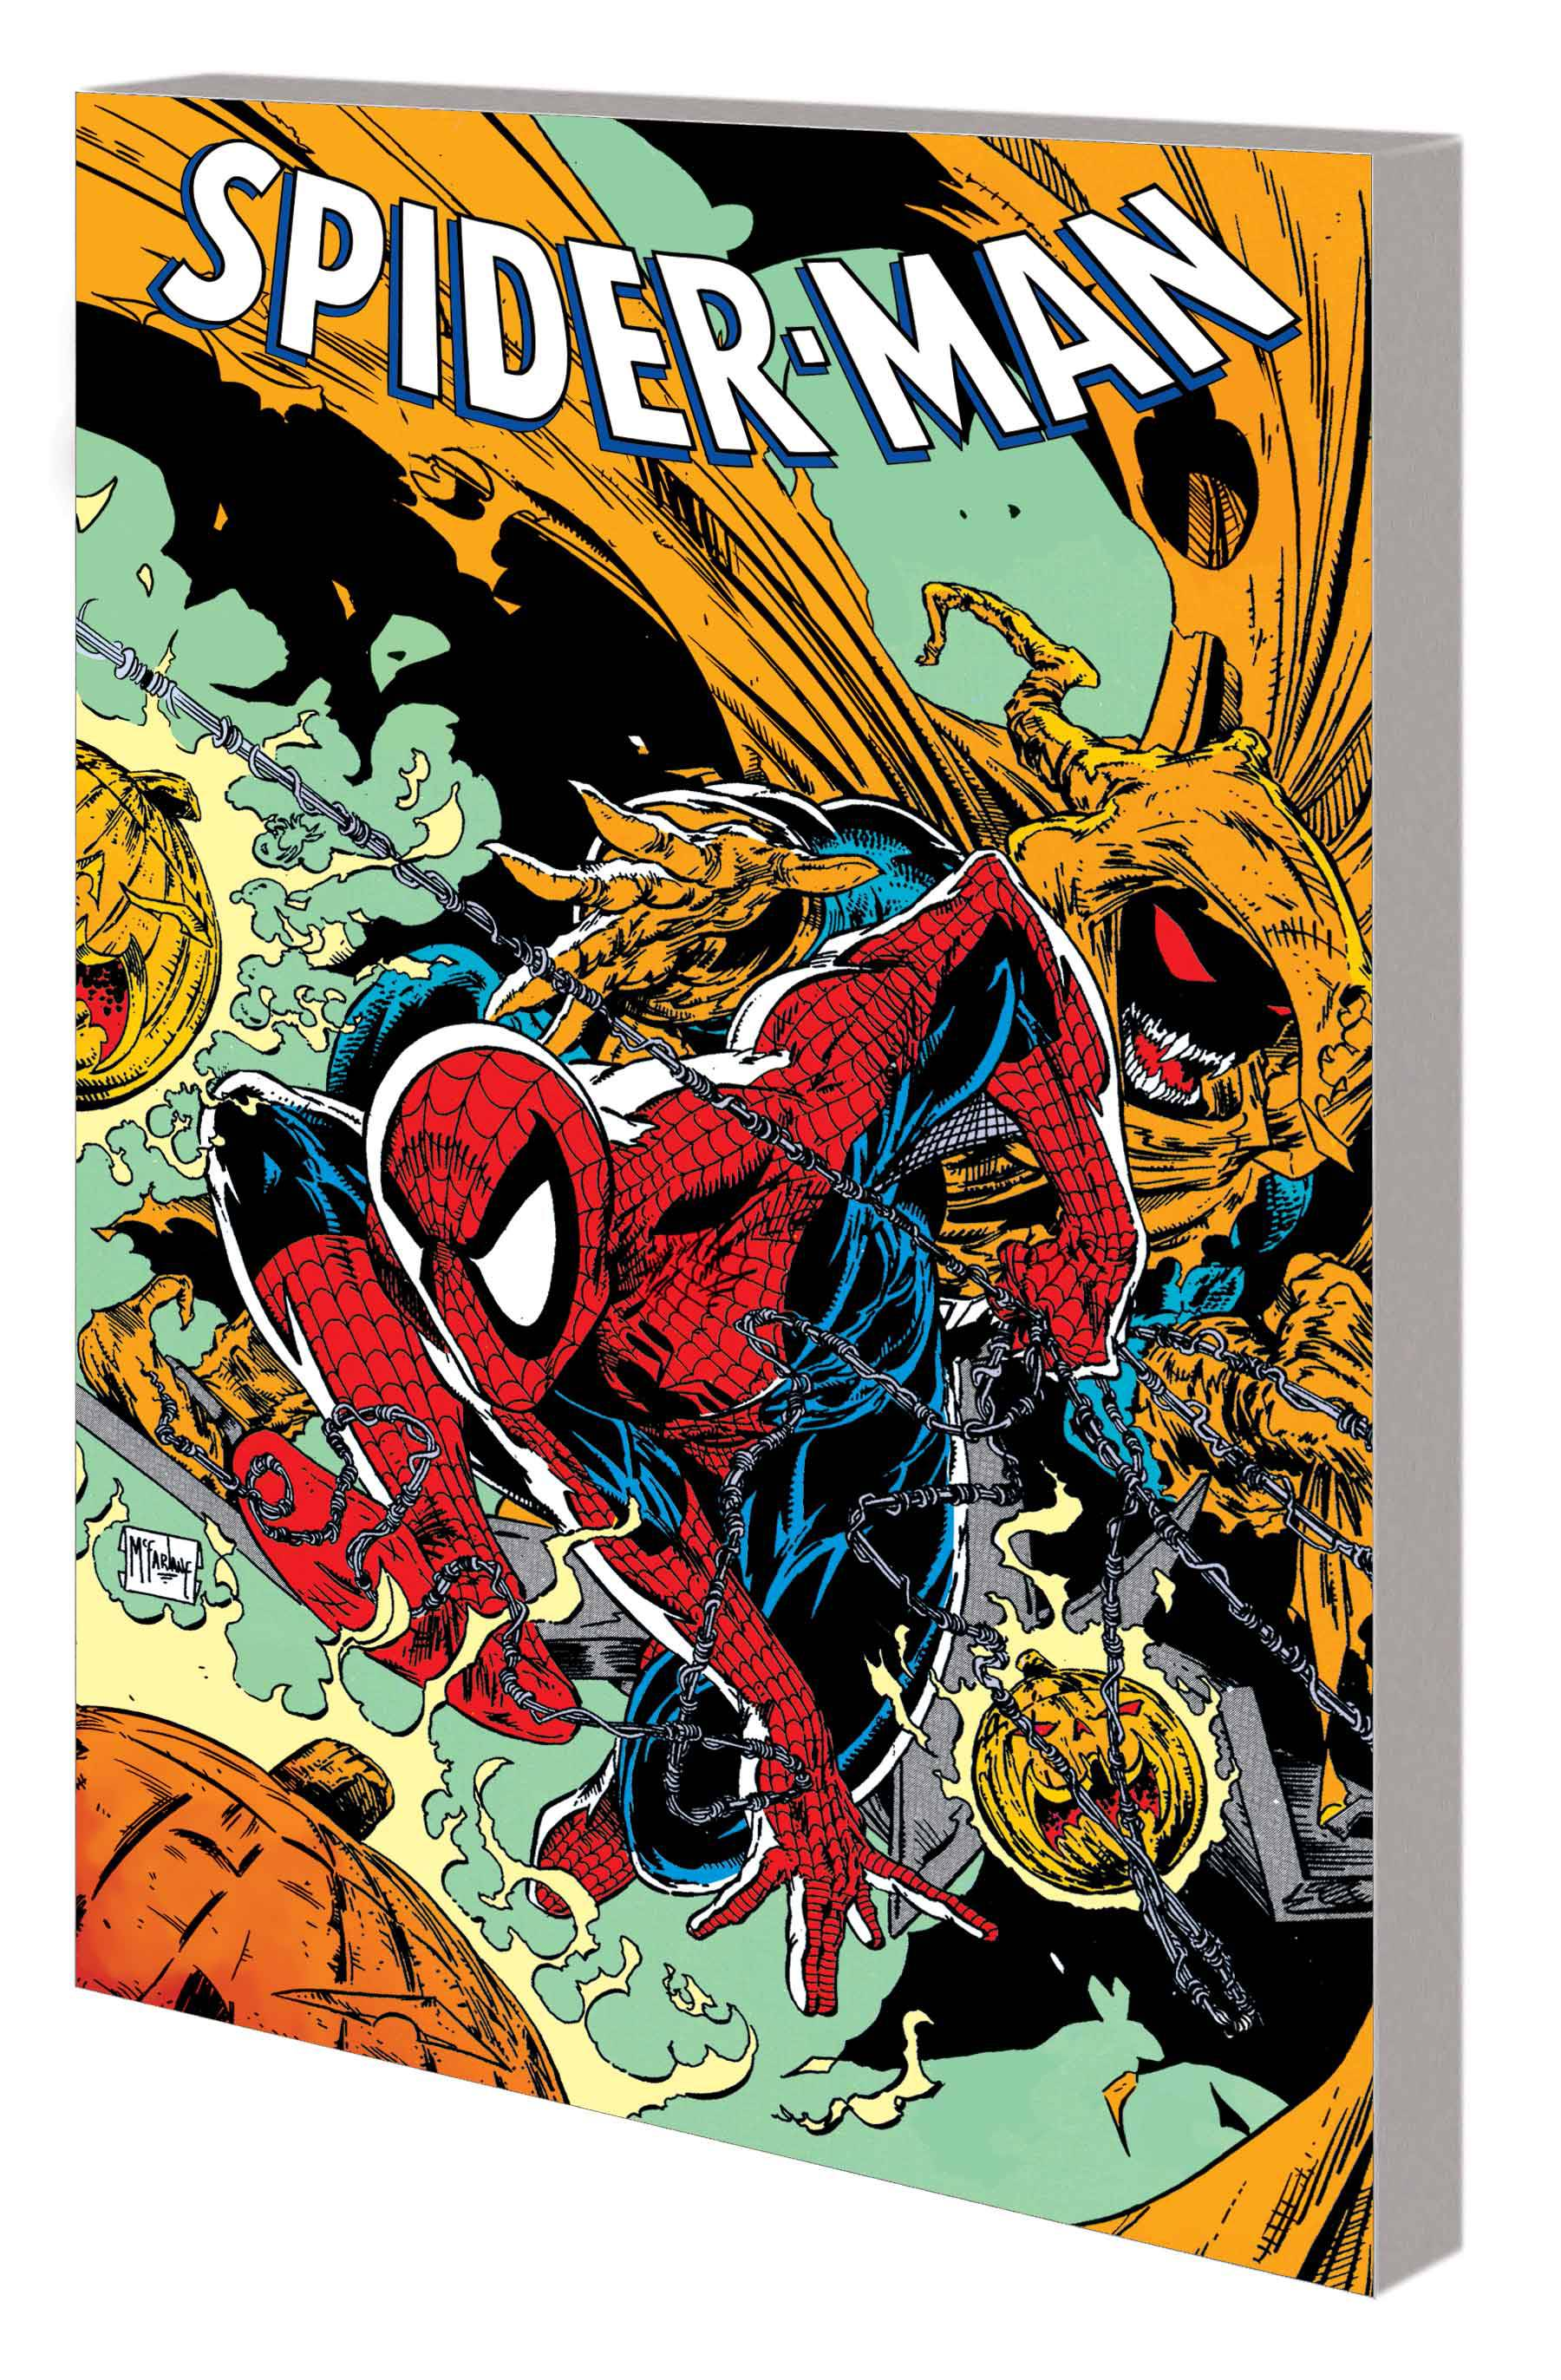 SPIDER-MAN BY TODD MCFARLANE COMPLETE COLLECTION TP